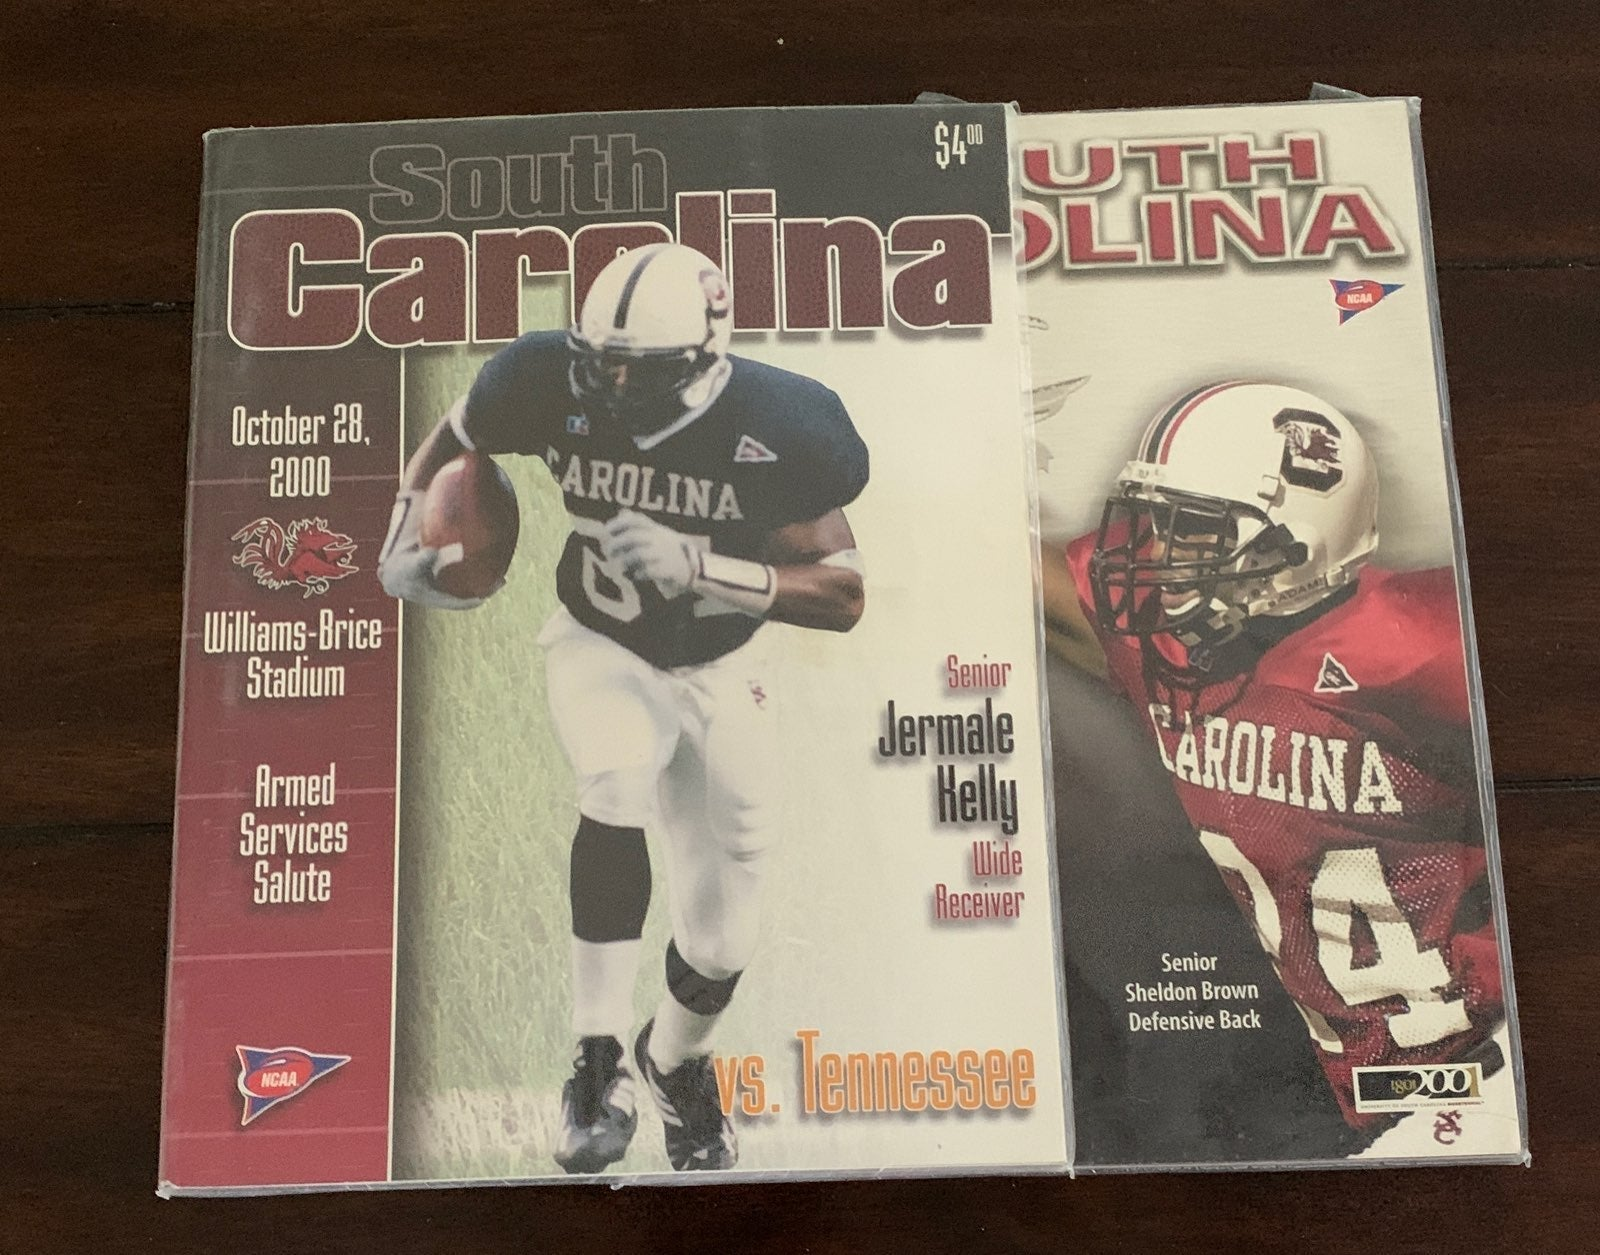 South Carolina Gamecock Souvenir Book